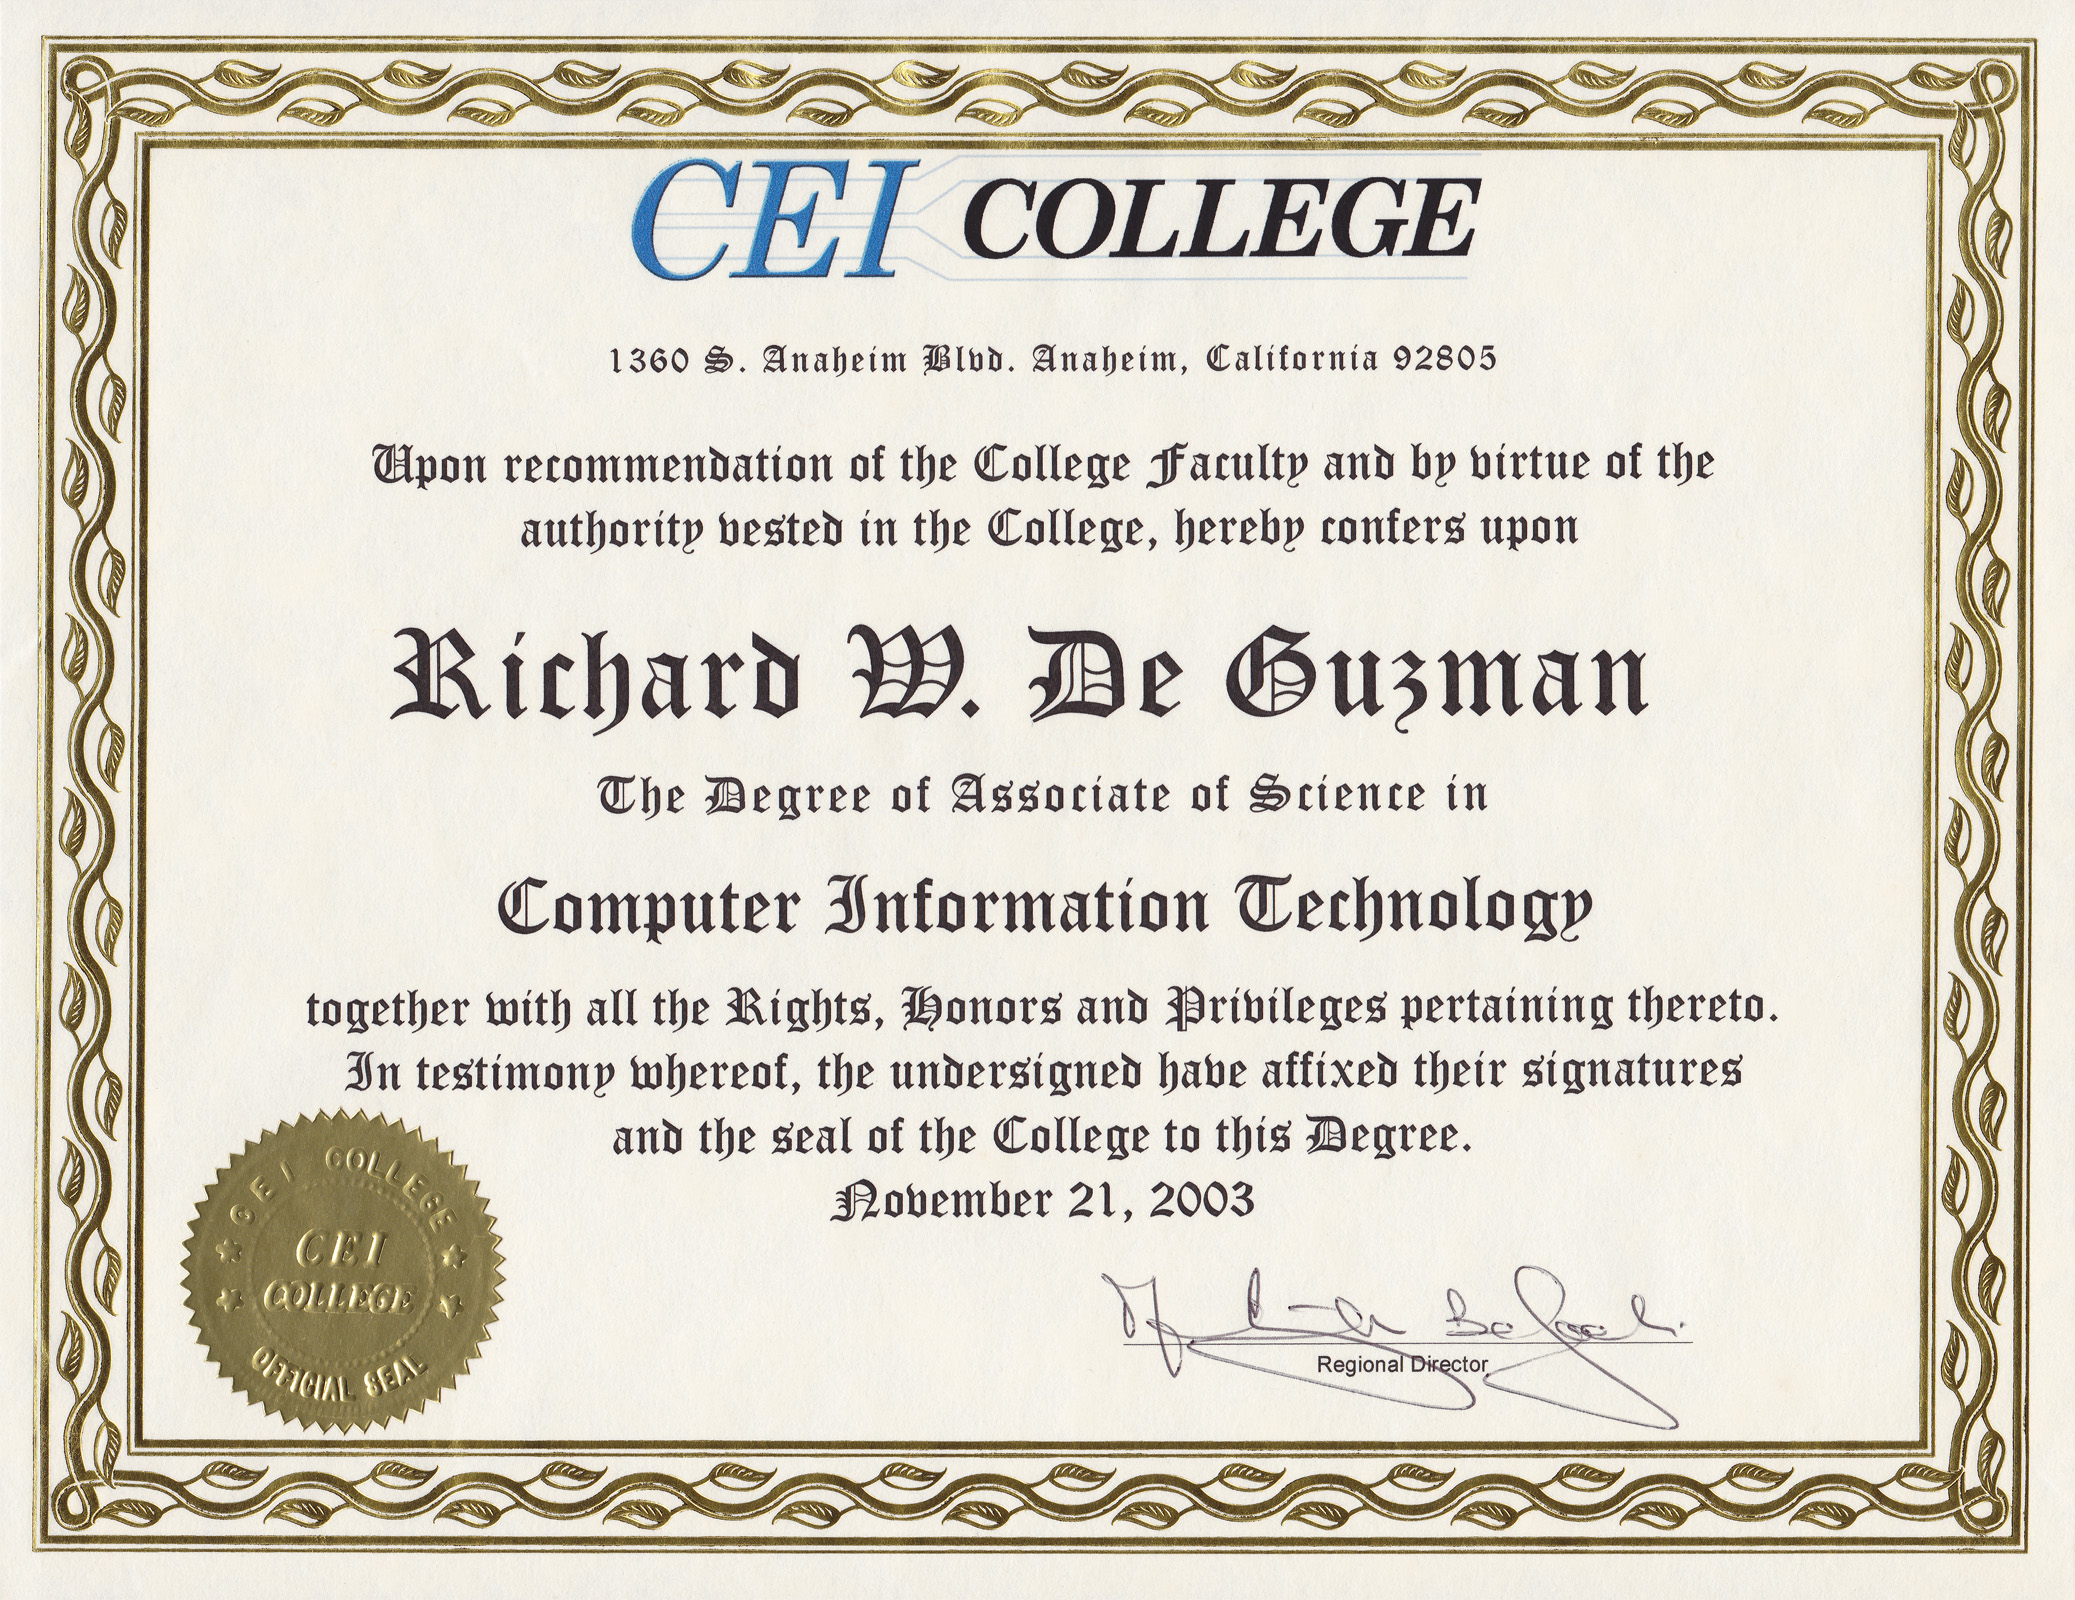 Richarddeguzmanm  Cei College Associate Of Science Degree. Privilege Car Insurance Online Bachlor Degree. Verizon Wireless Login Business. Cell Phone Rate Plan Comparison. Business Line Of Credit Calculator. Can You Get A Car Loan With Bad Credit. Refrigerator Not Cooling Repair. How Much Does University Cost. Health Insurance For Visiting Parents